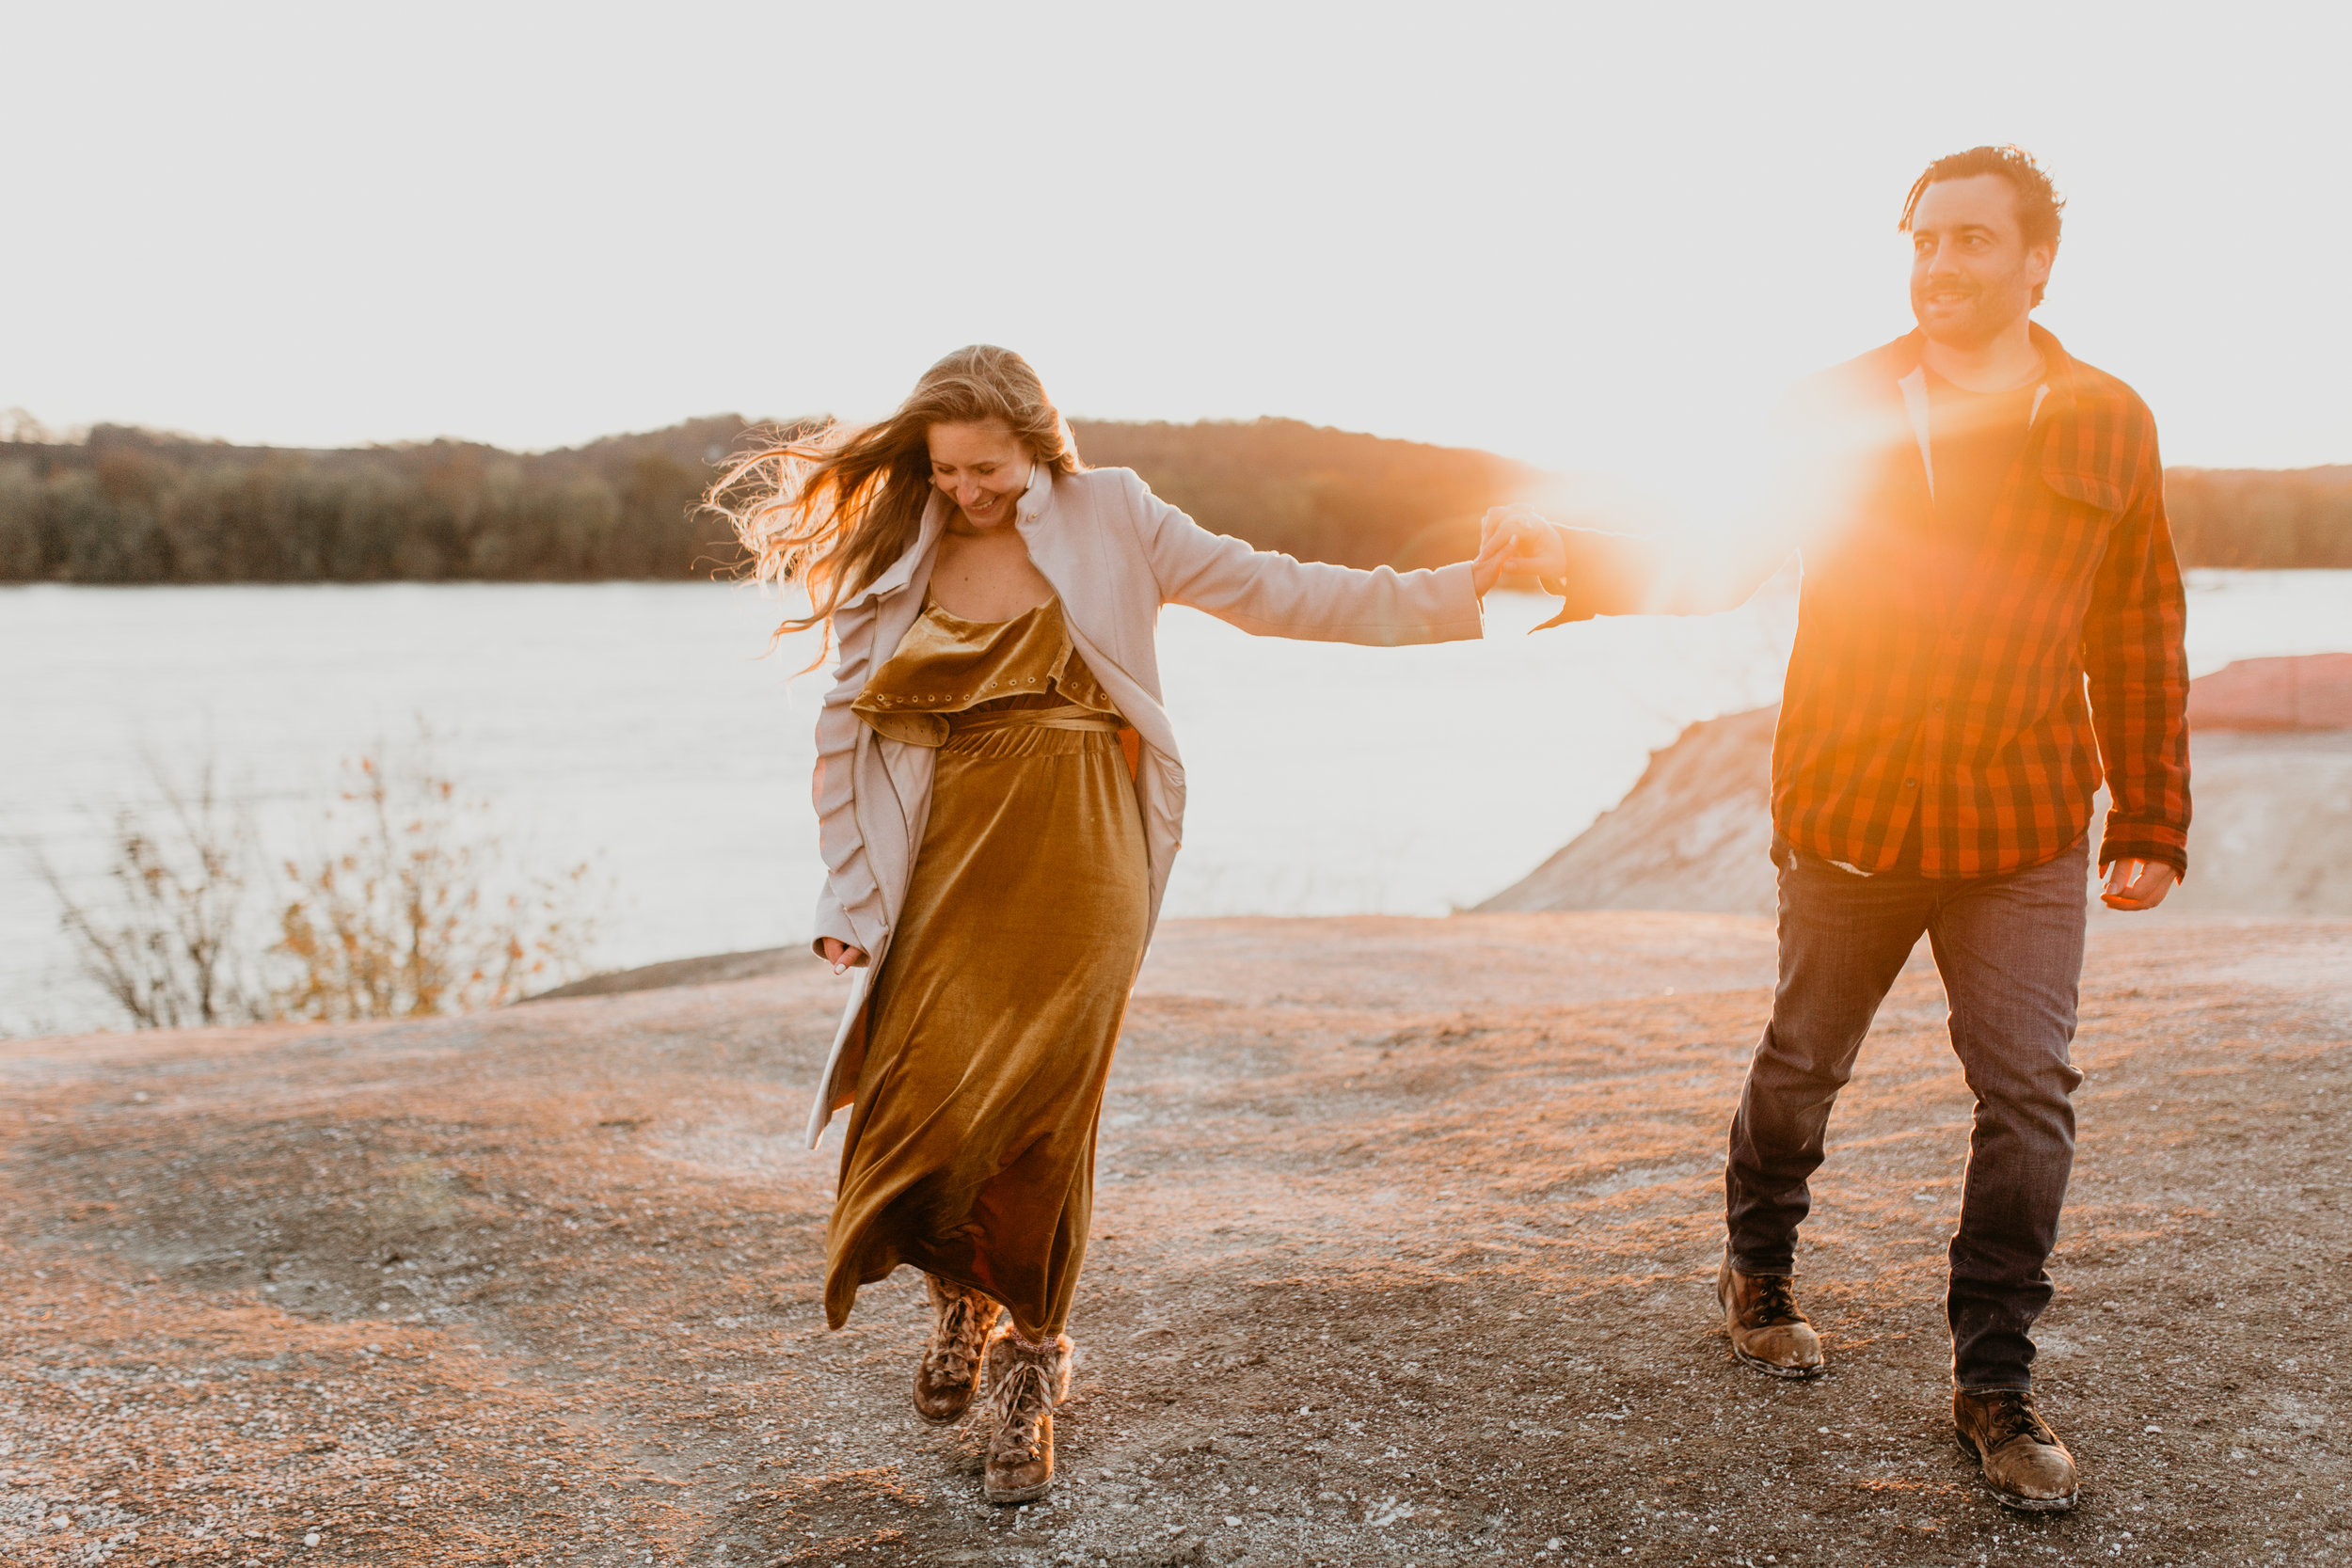 nicole-daacke-photography-white-cliffs-of-conoy-in-lancaster-pa-pennsylvania-adventure-session-adventure-elopement-photographer-engagement session-in-lancaster-pa-photographer-golden-sunset-winter-solstice-wedding-riverside-elopement-4202.jpg